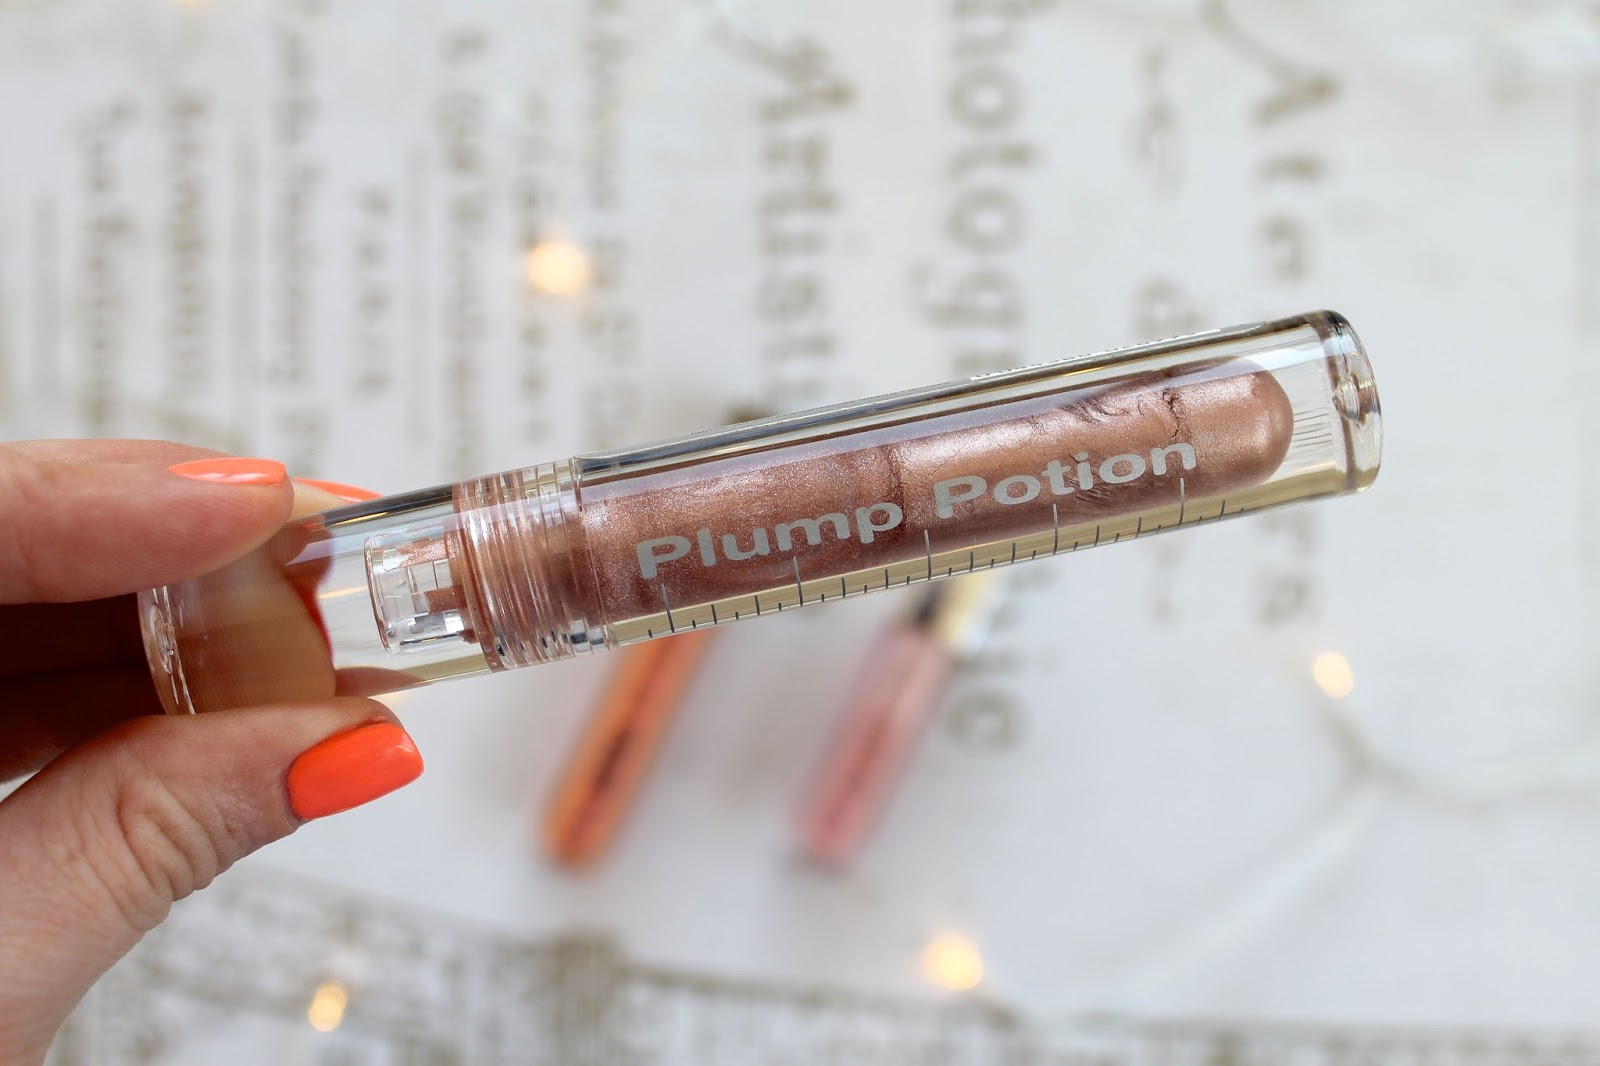 Physicians Formula Lip Plump Potion